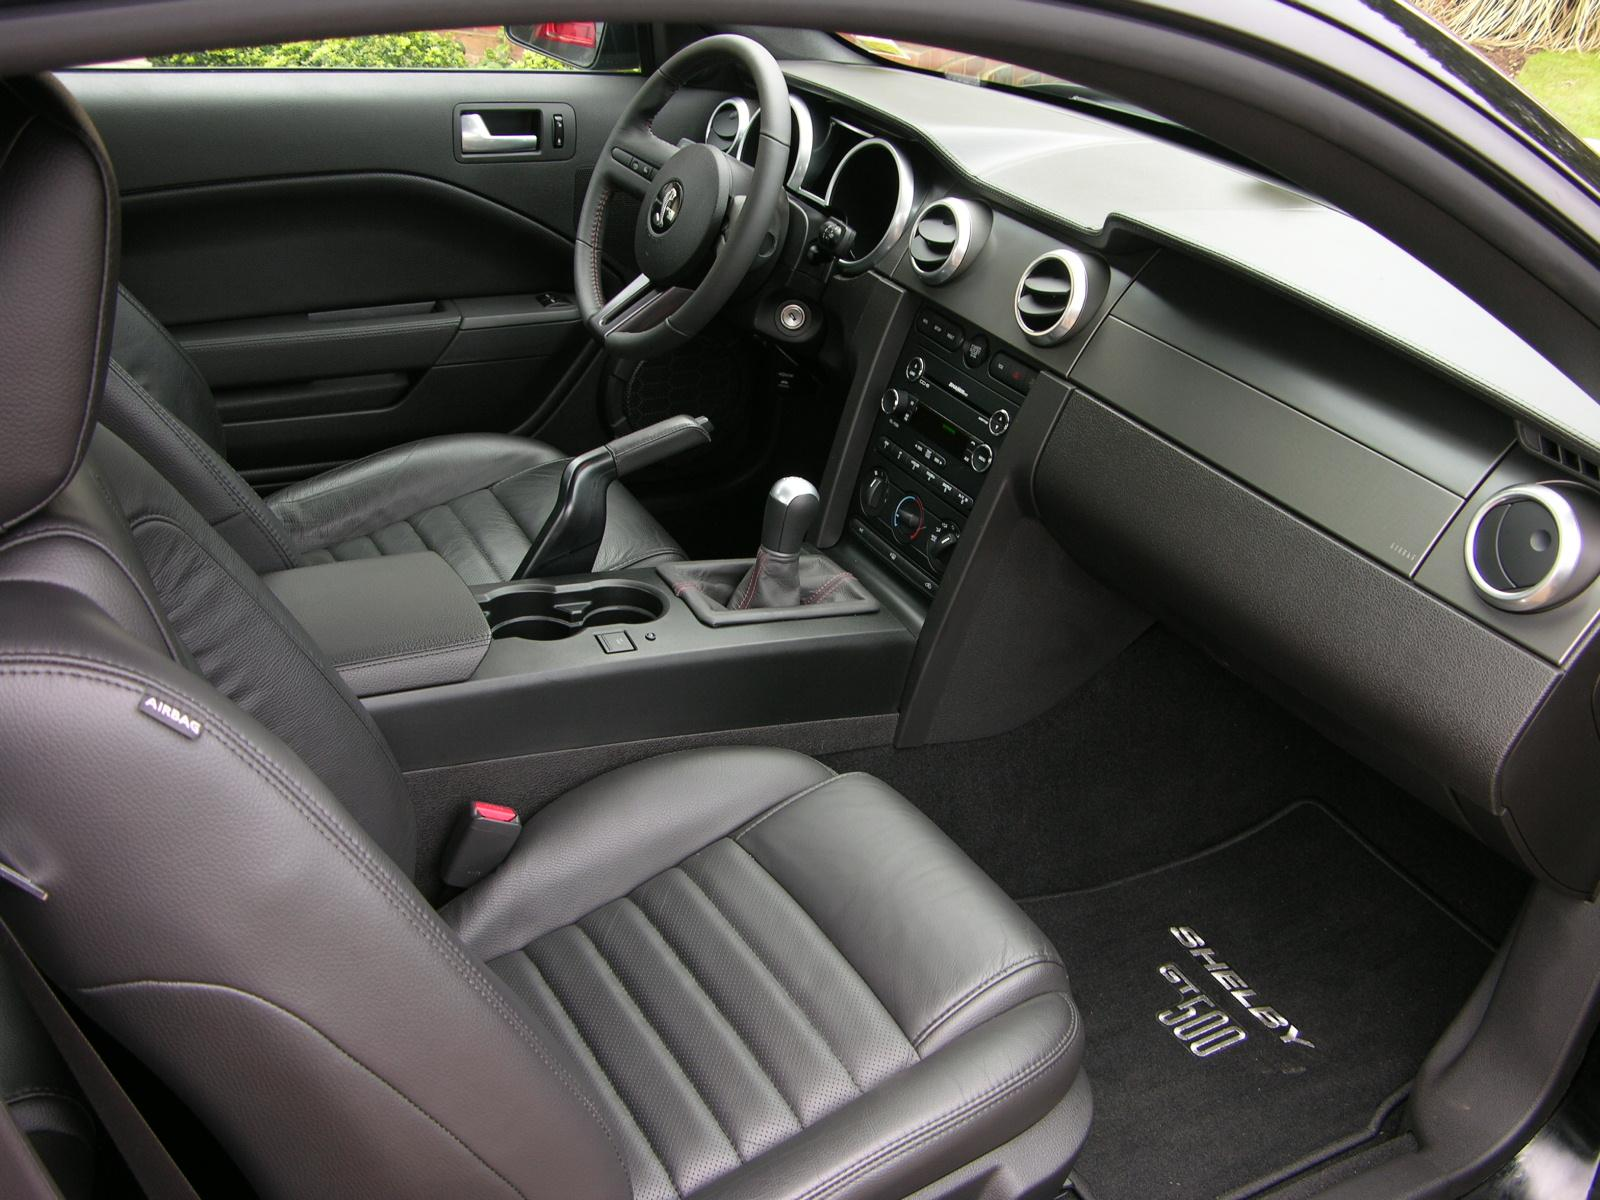 2007 mustang gt500 interior 2007 ford mustang shelby gt500 - File 2008 Ford Mustang Shelby Gt500 Flickr The Car Spy 7